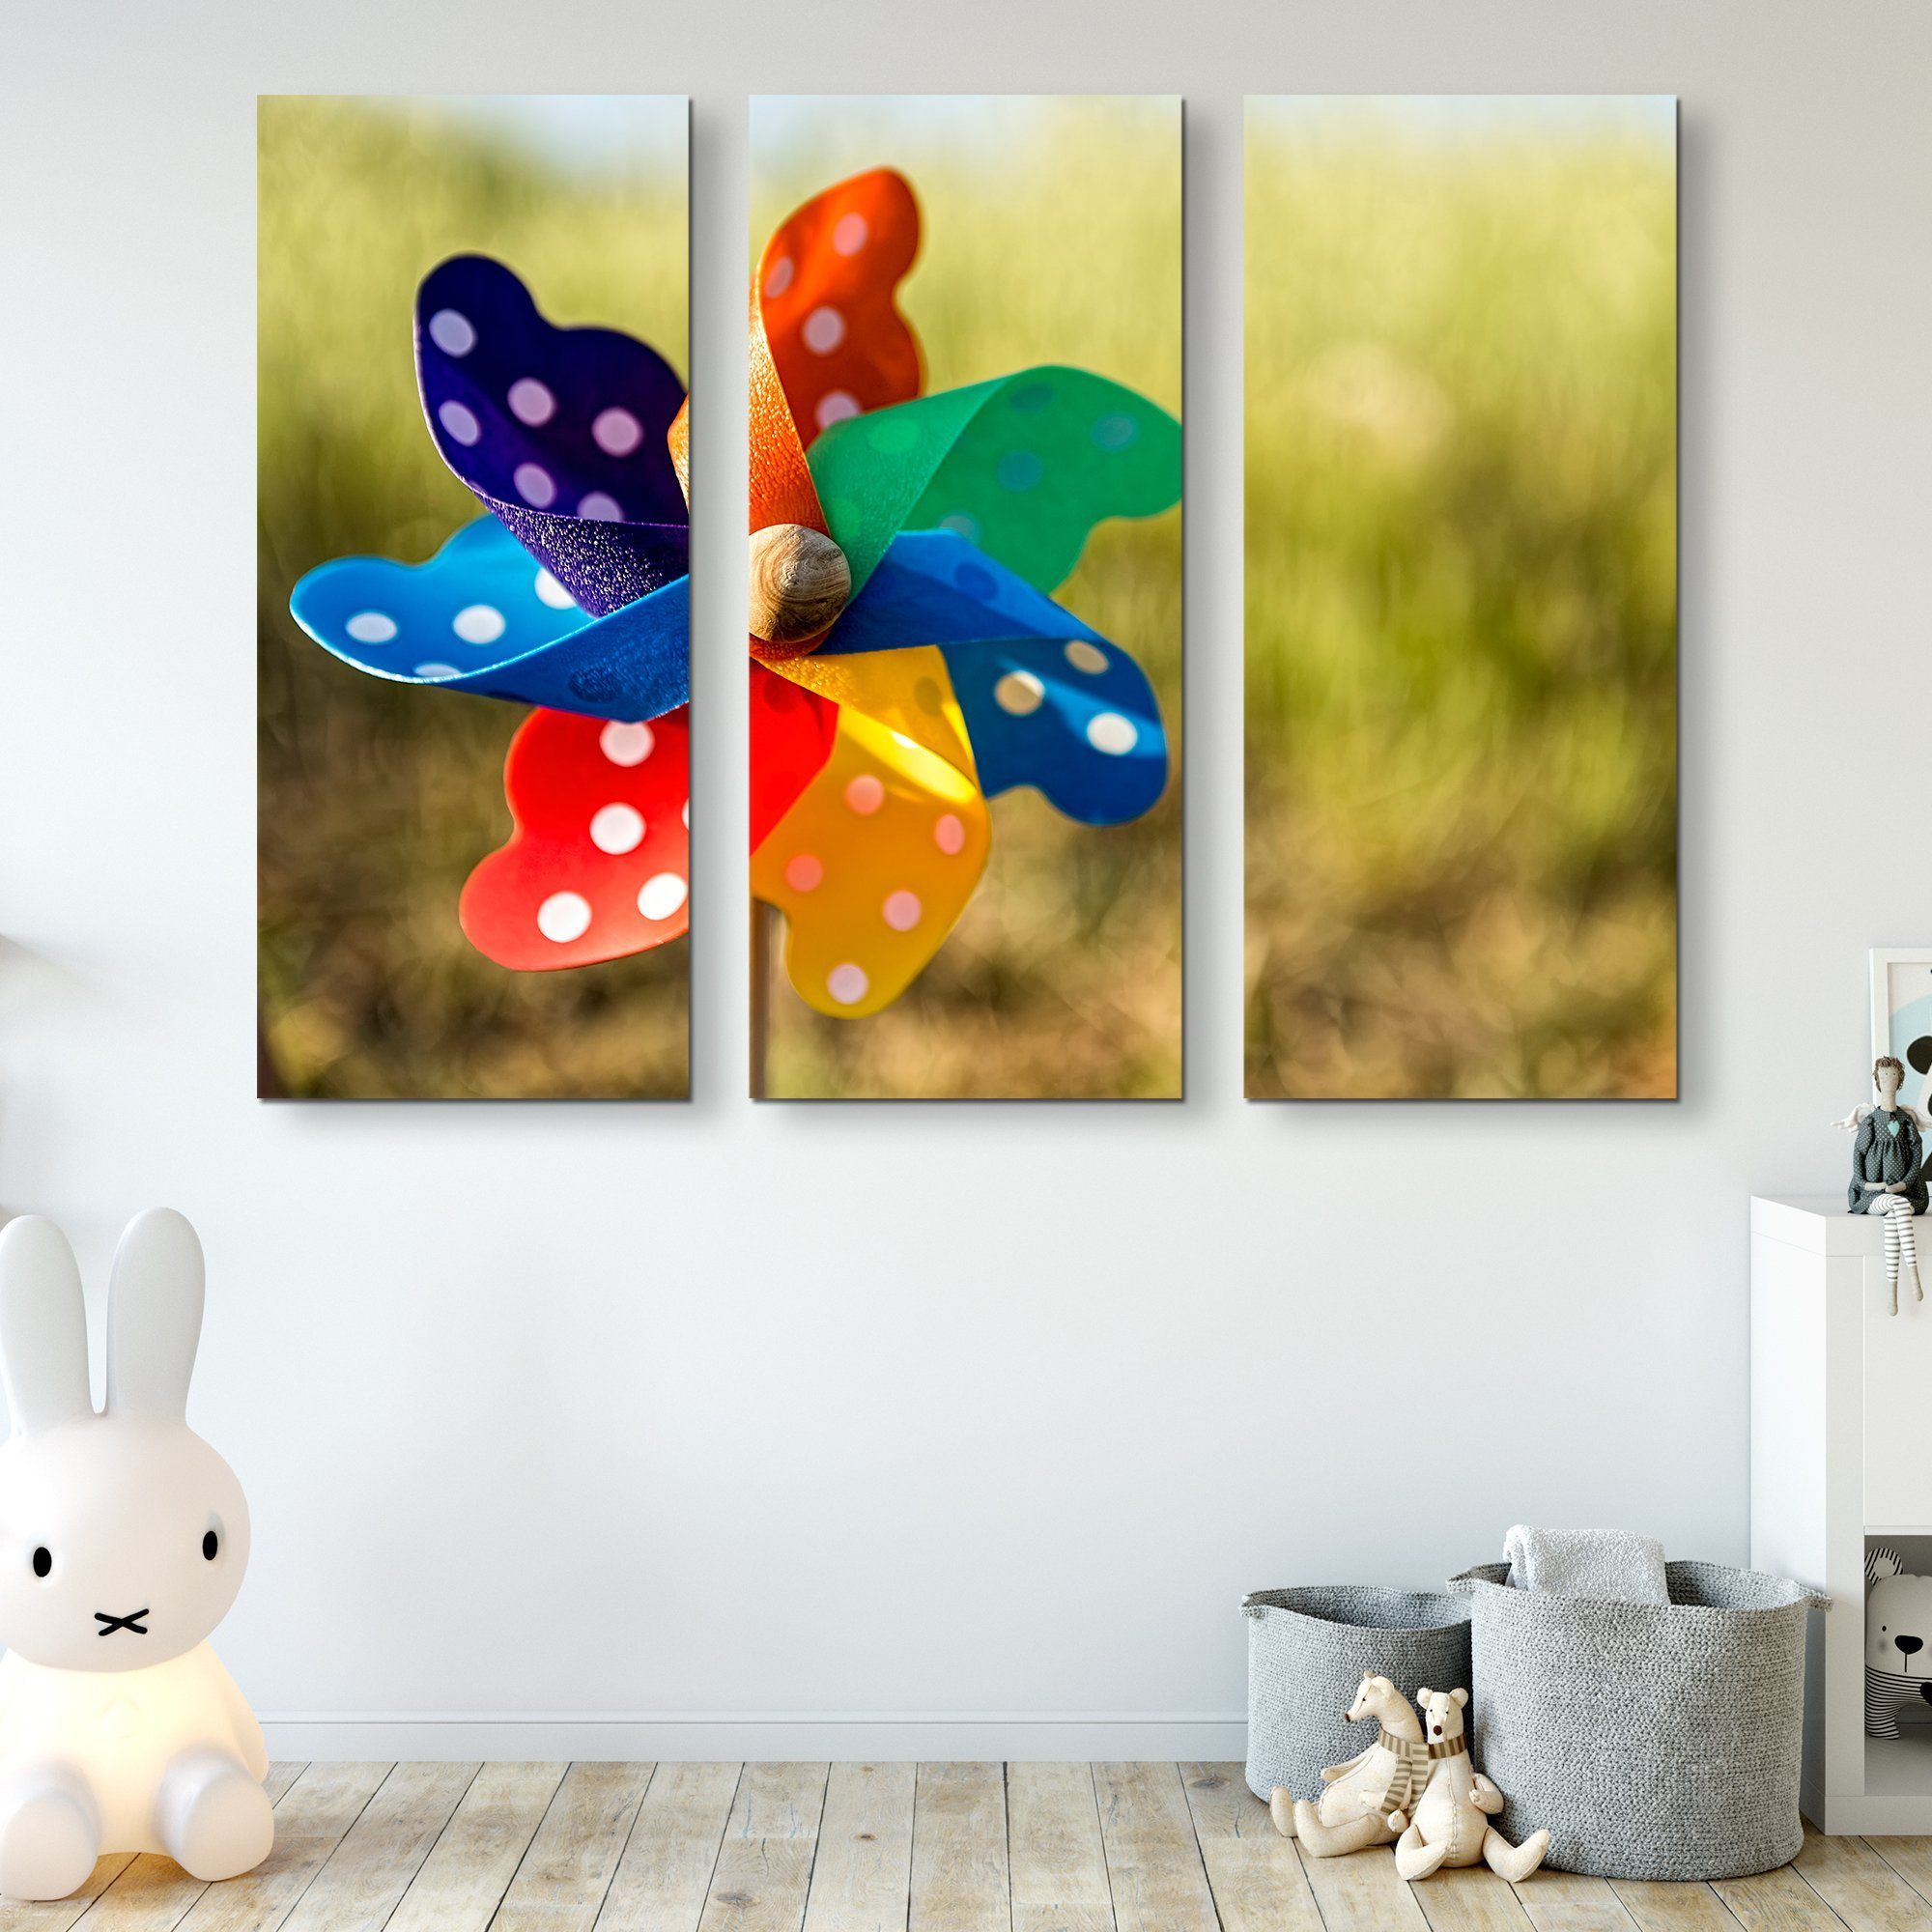 3 piece Pinwheel wall art